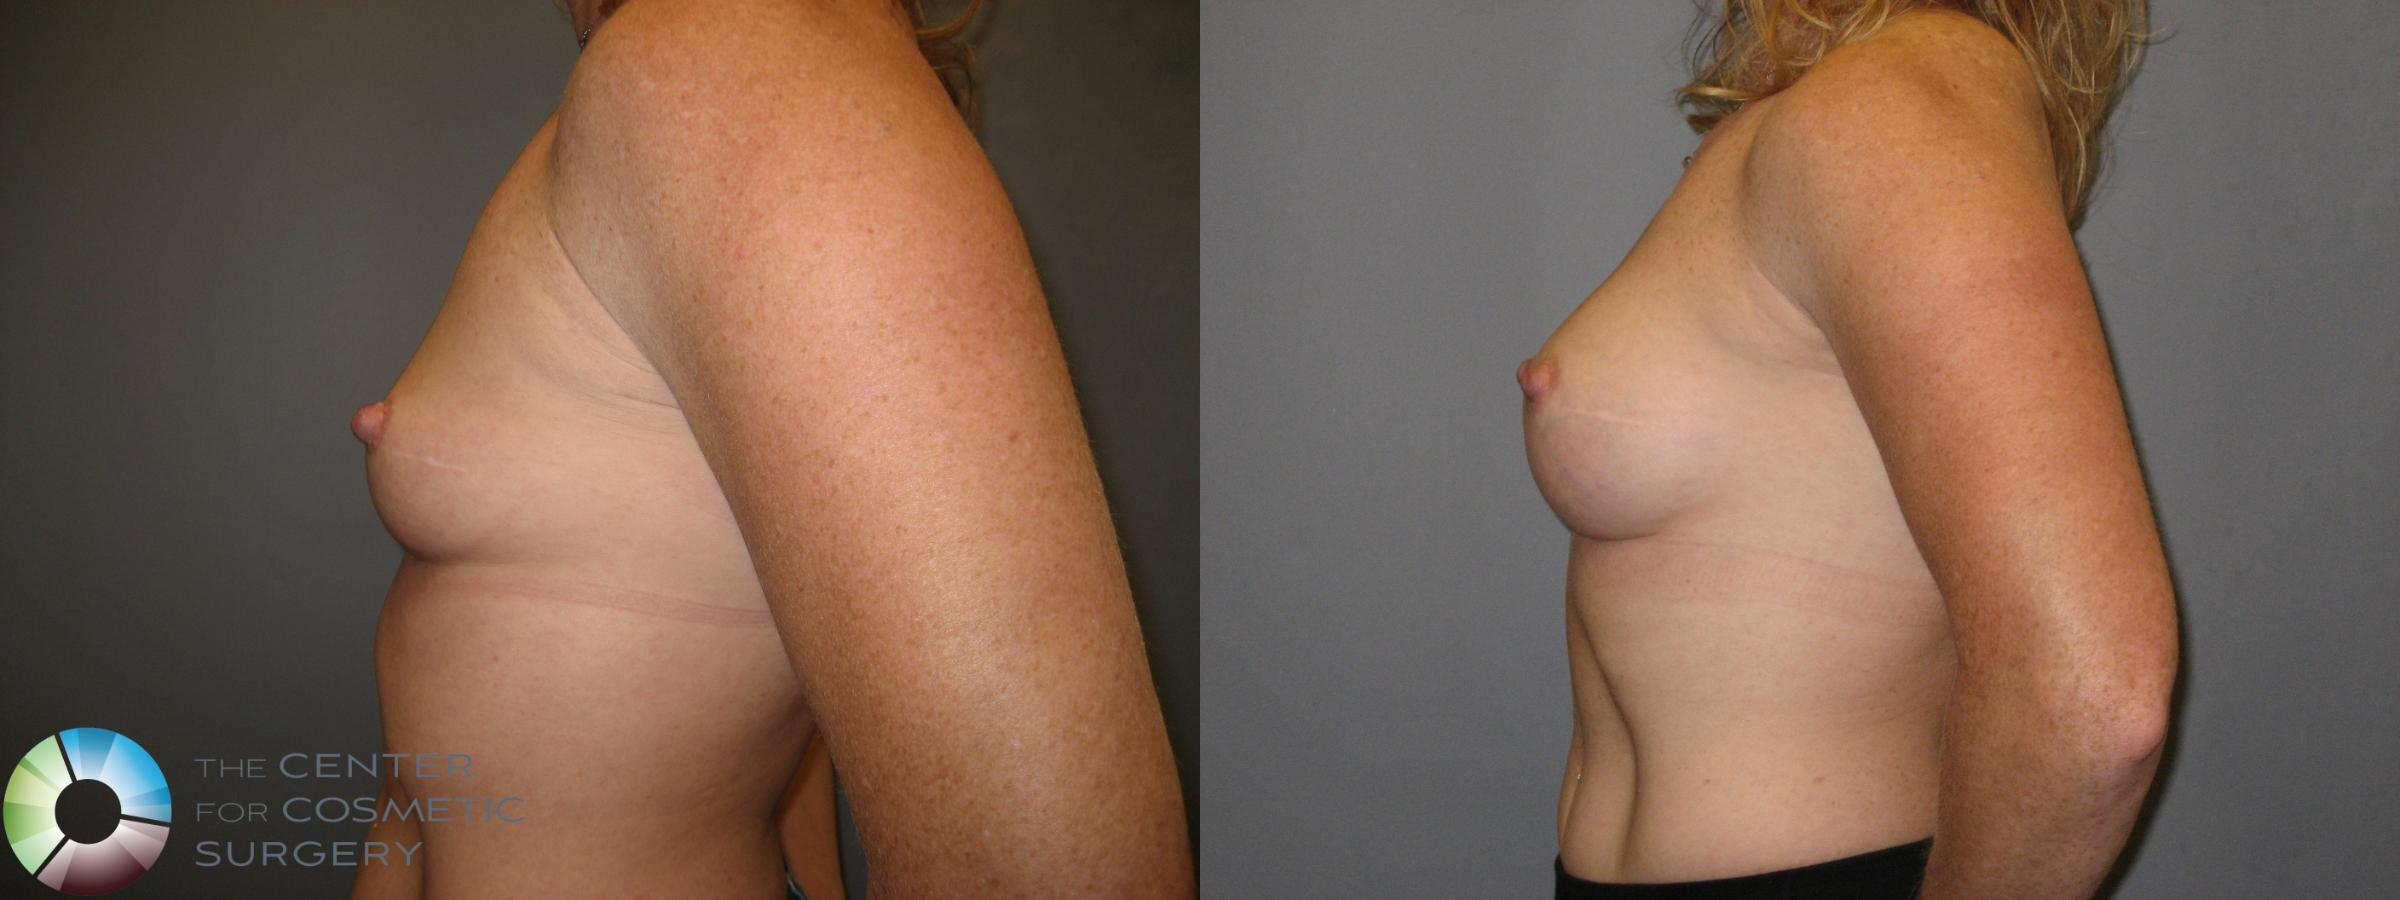 Breast Augmentation Case 230 Before & After View #3 | Golden, CO | The Center for Cosmetic Surgery